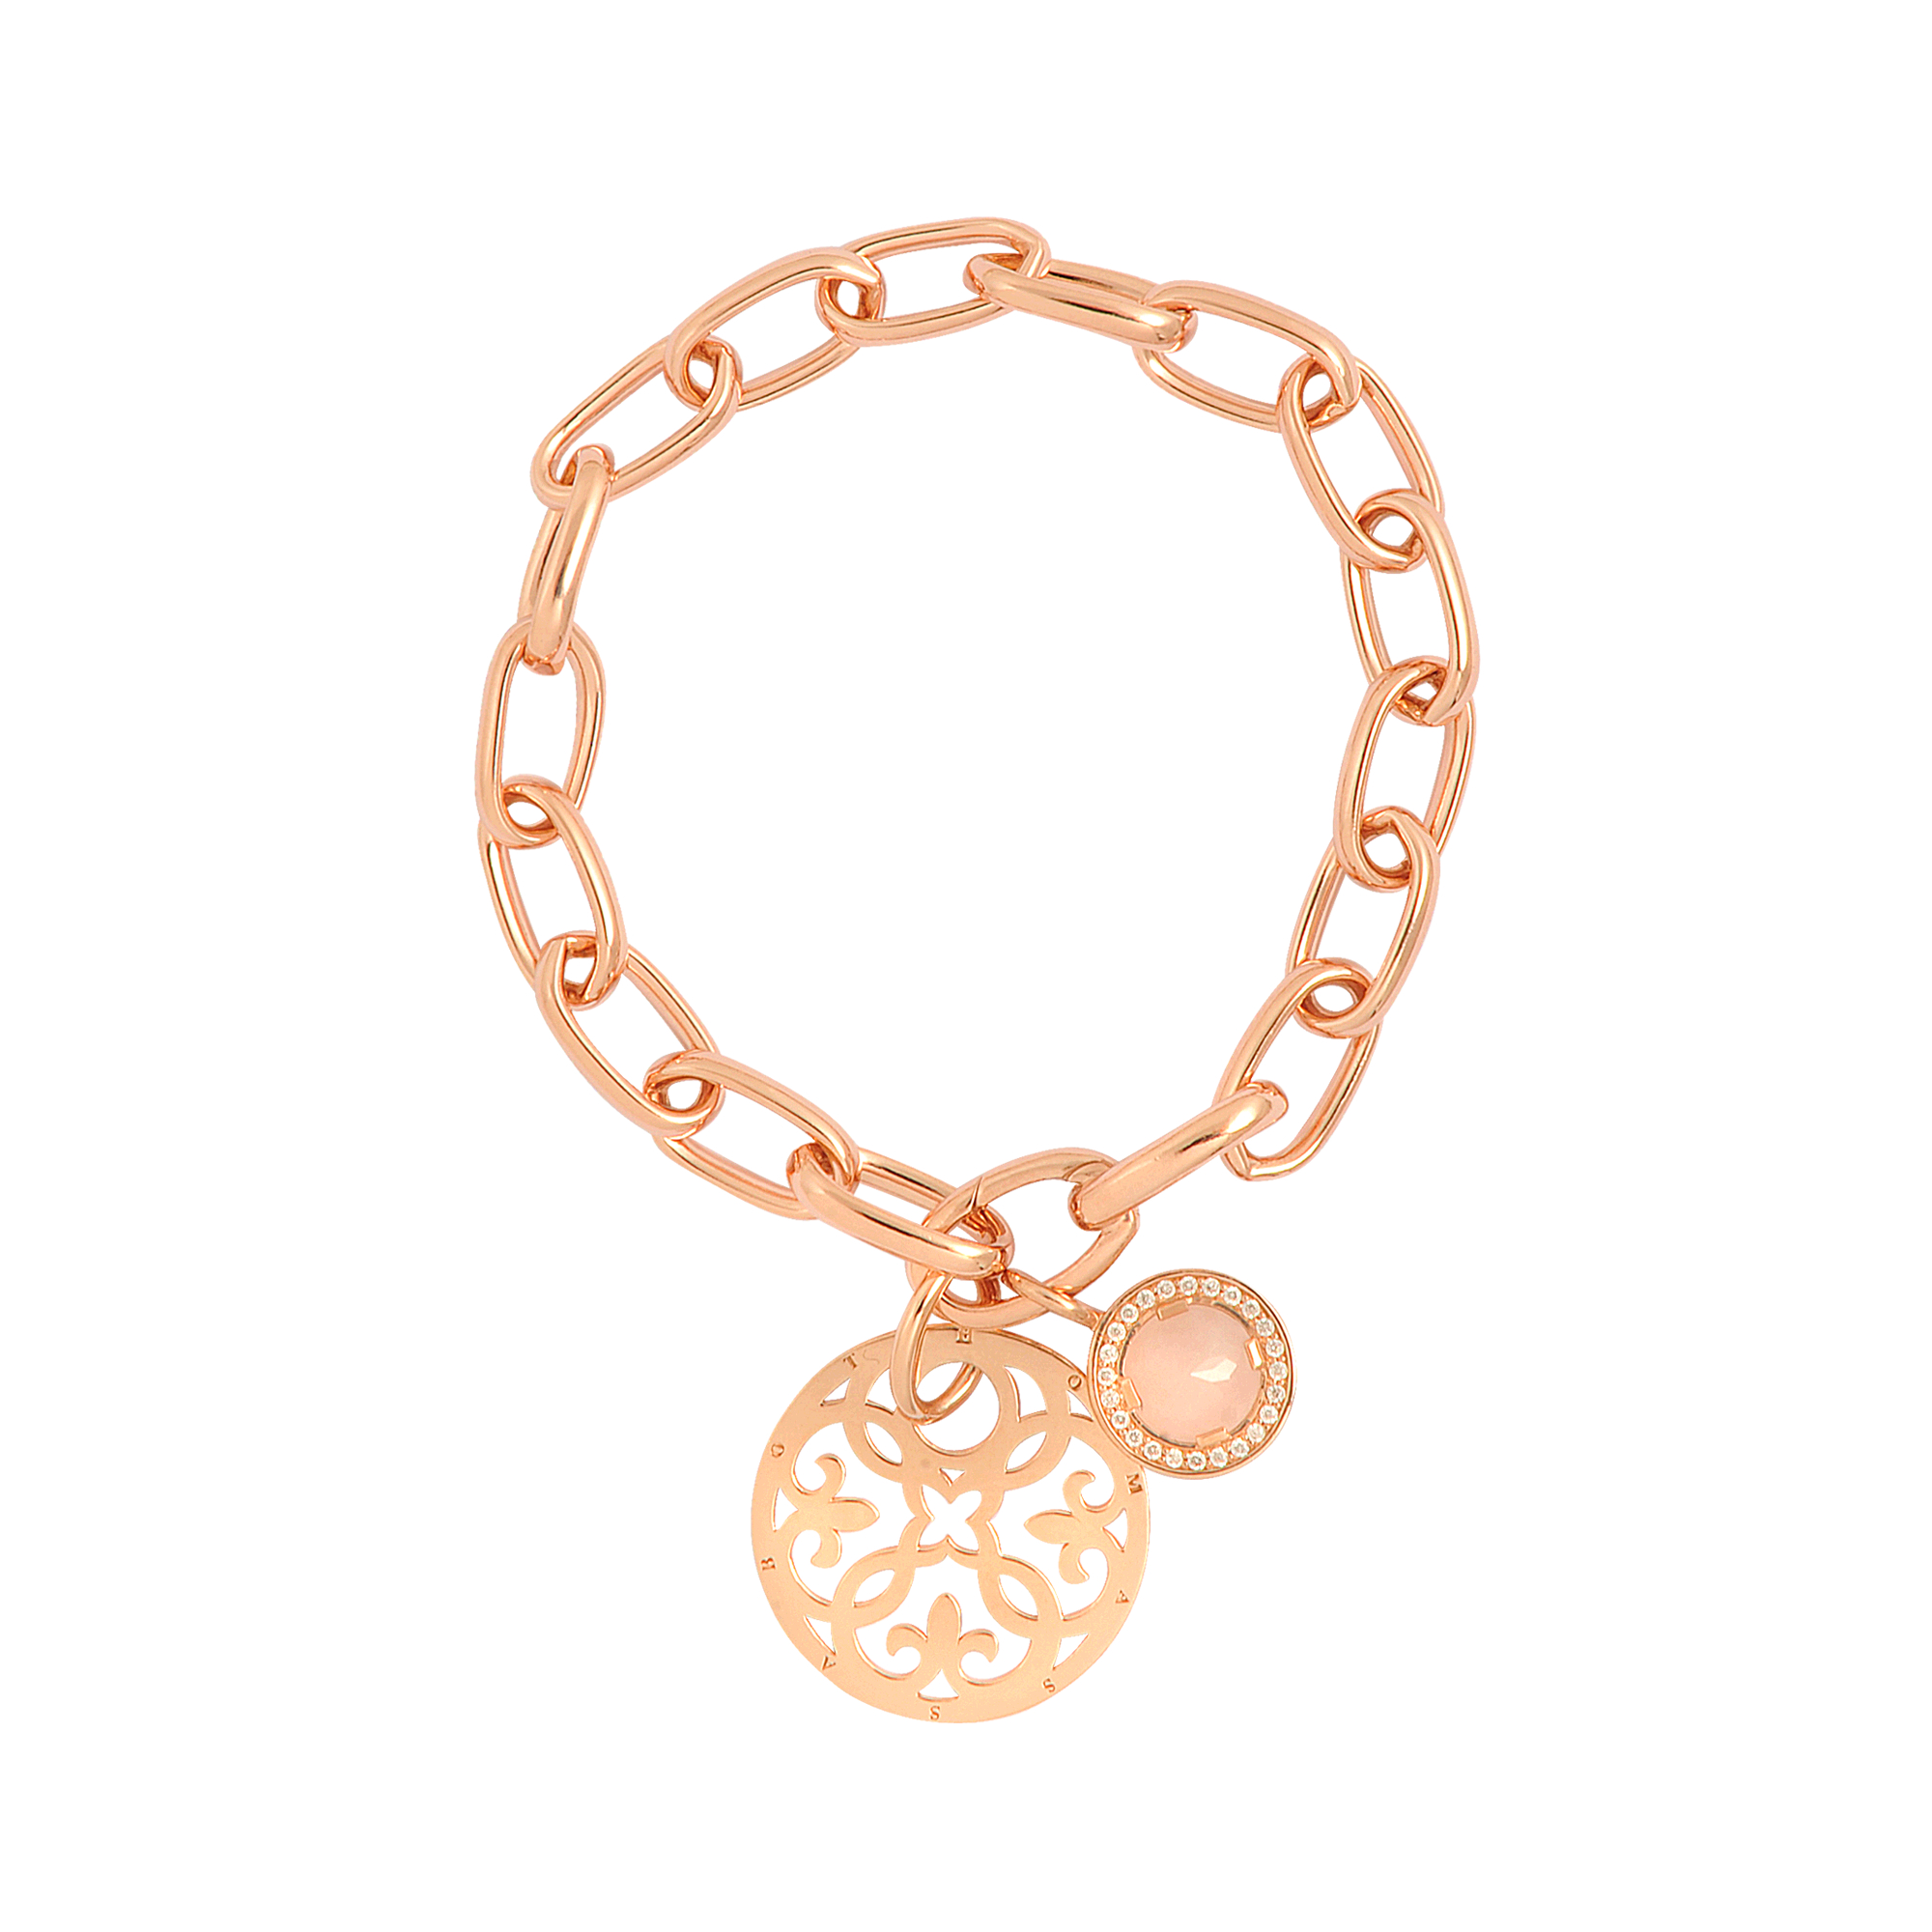 Thomas sabo Rose Gold Charm Bracelet in Pink